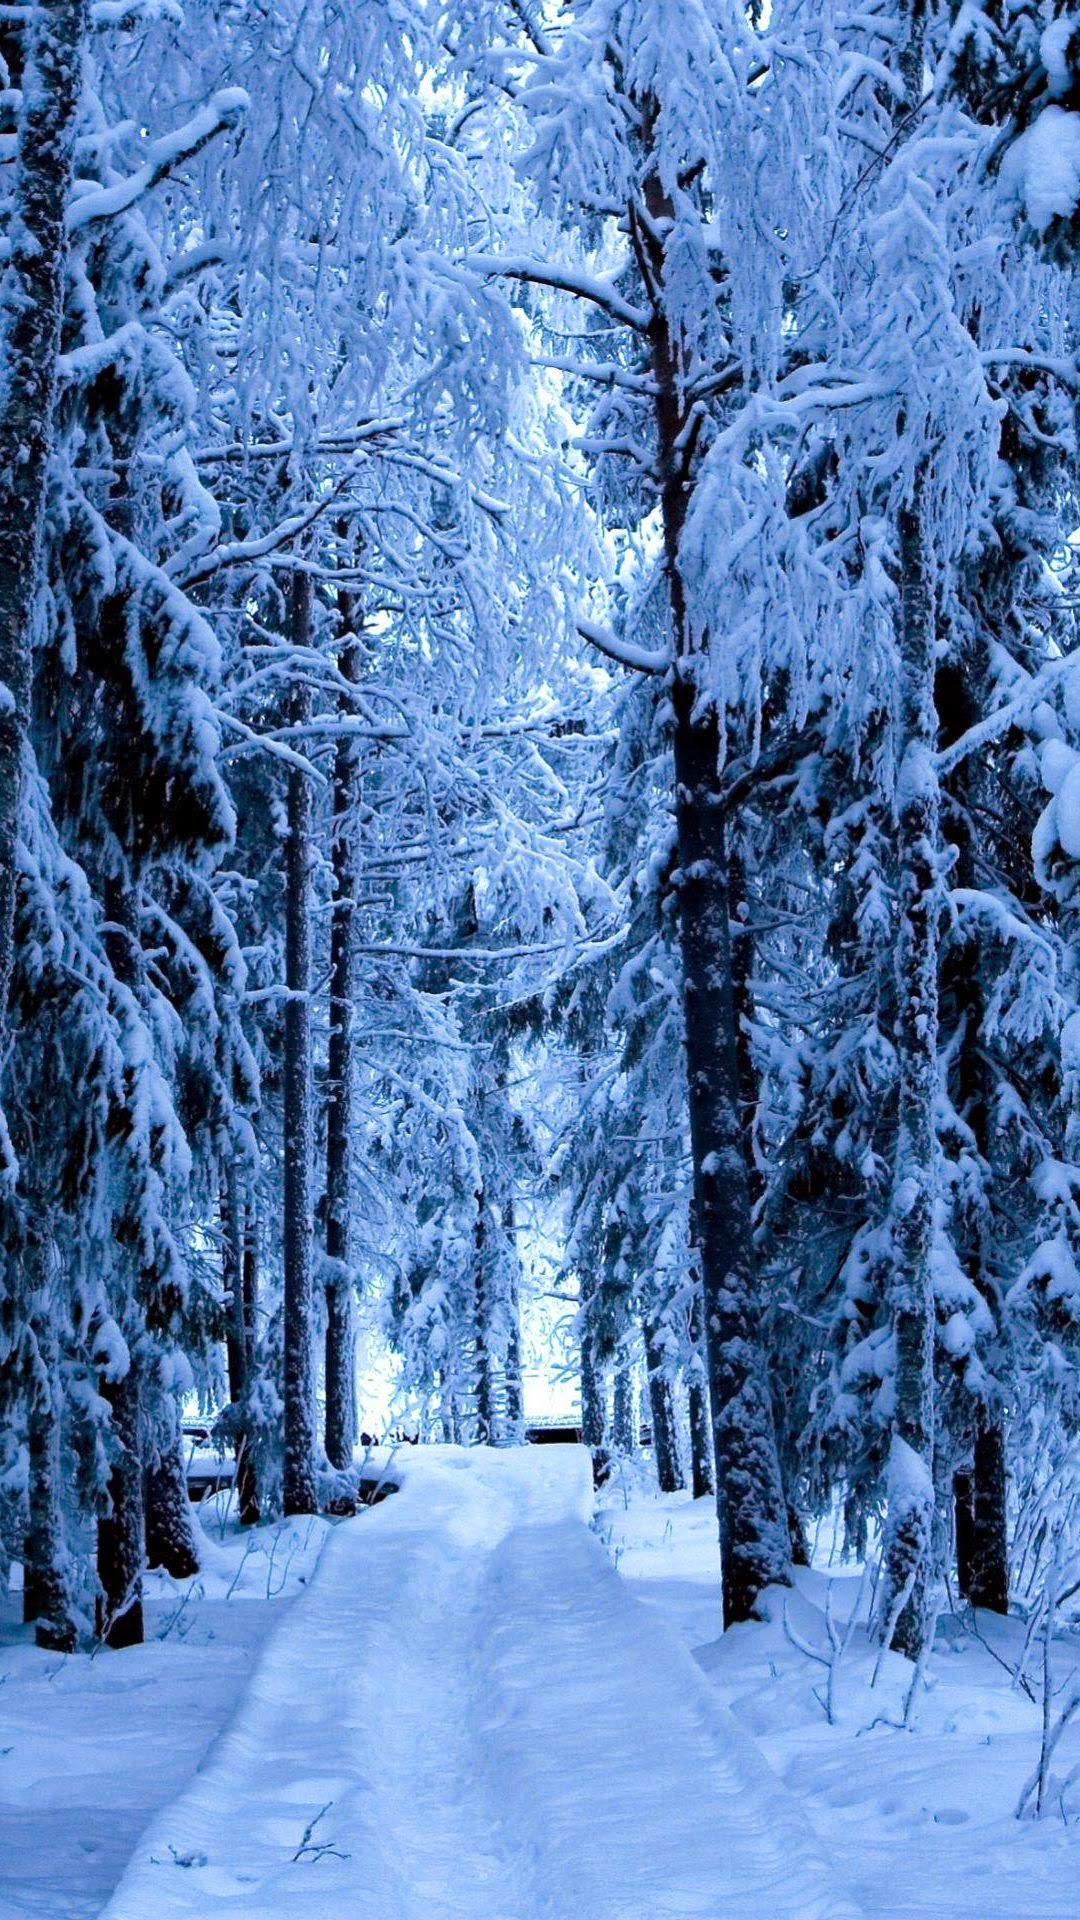 click here to download snow forest blue ice android wallpaper resolution 1080x1920 pixel